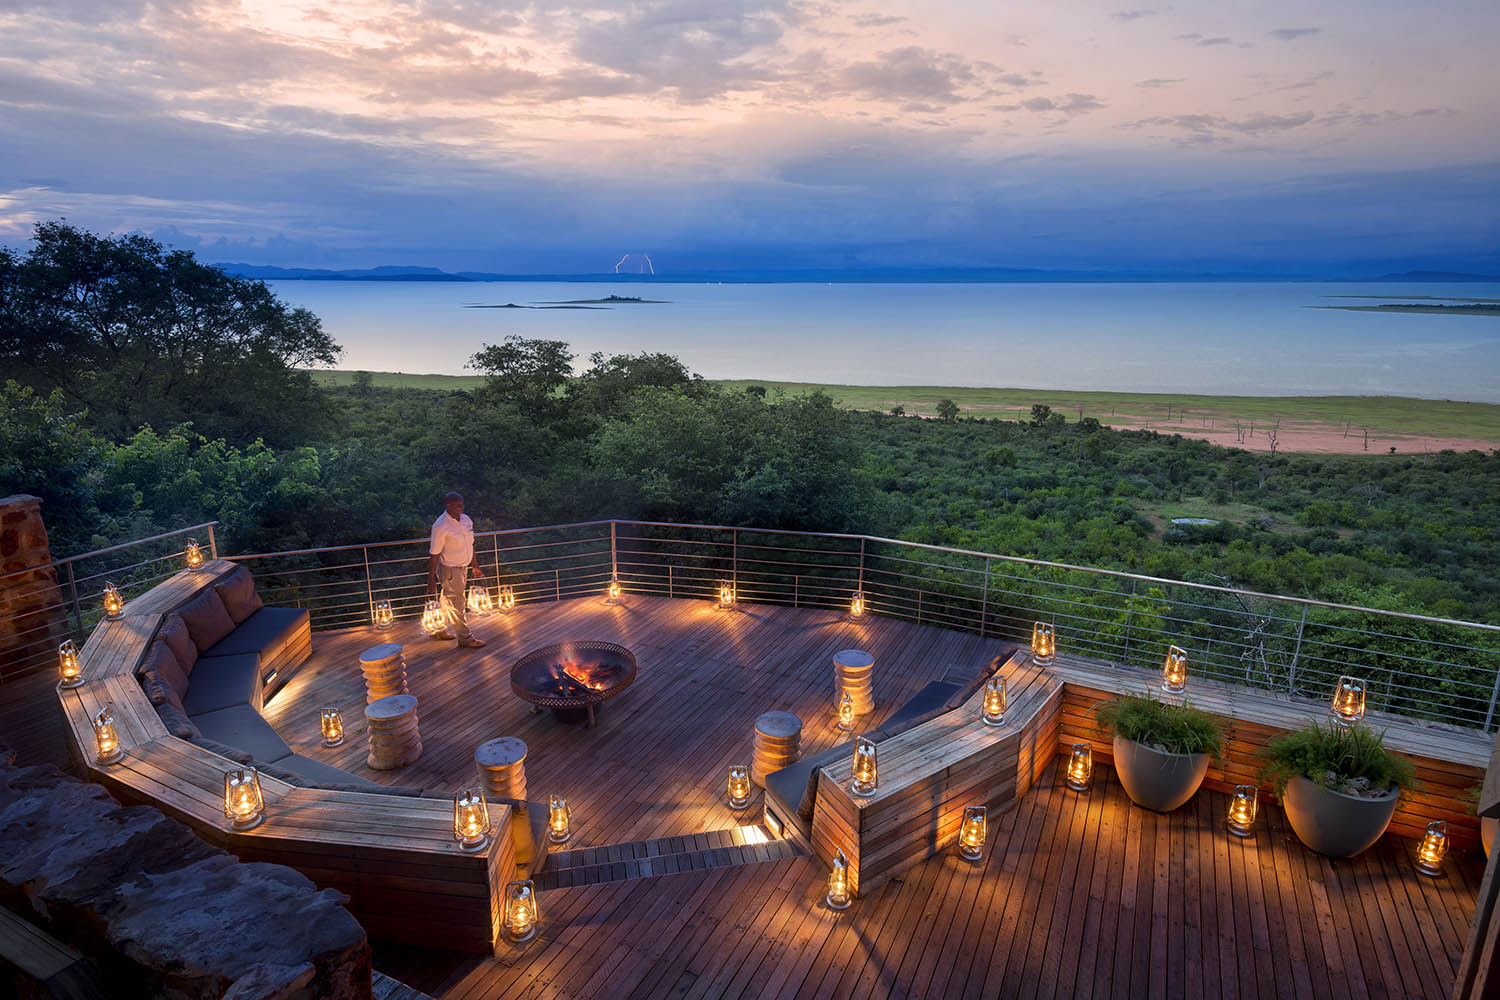 bumi hills safari-lodge-lake-kariba-zimbabwe-zambia-in-style-luxury-safaris-african-bush-camps-firepit